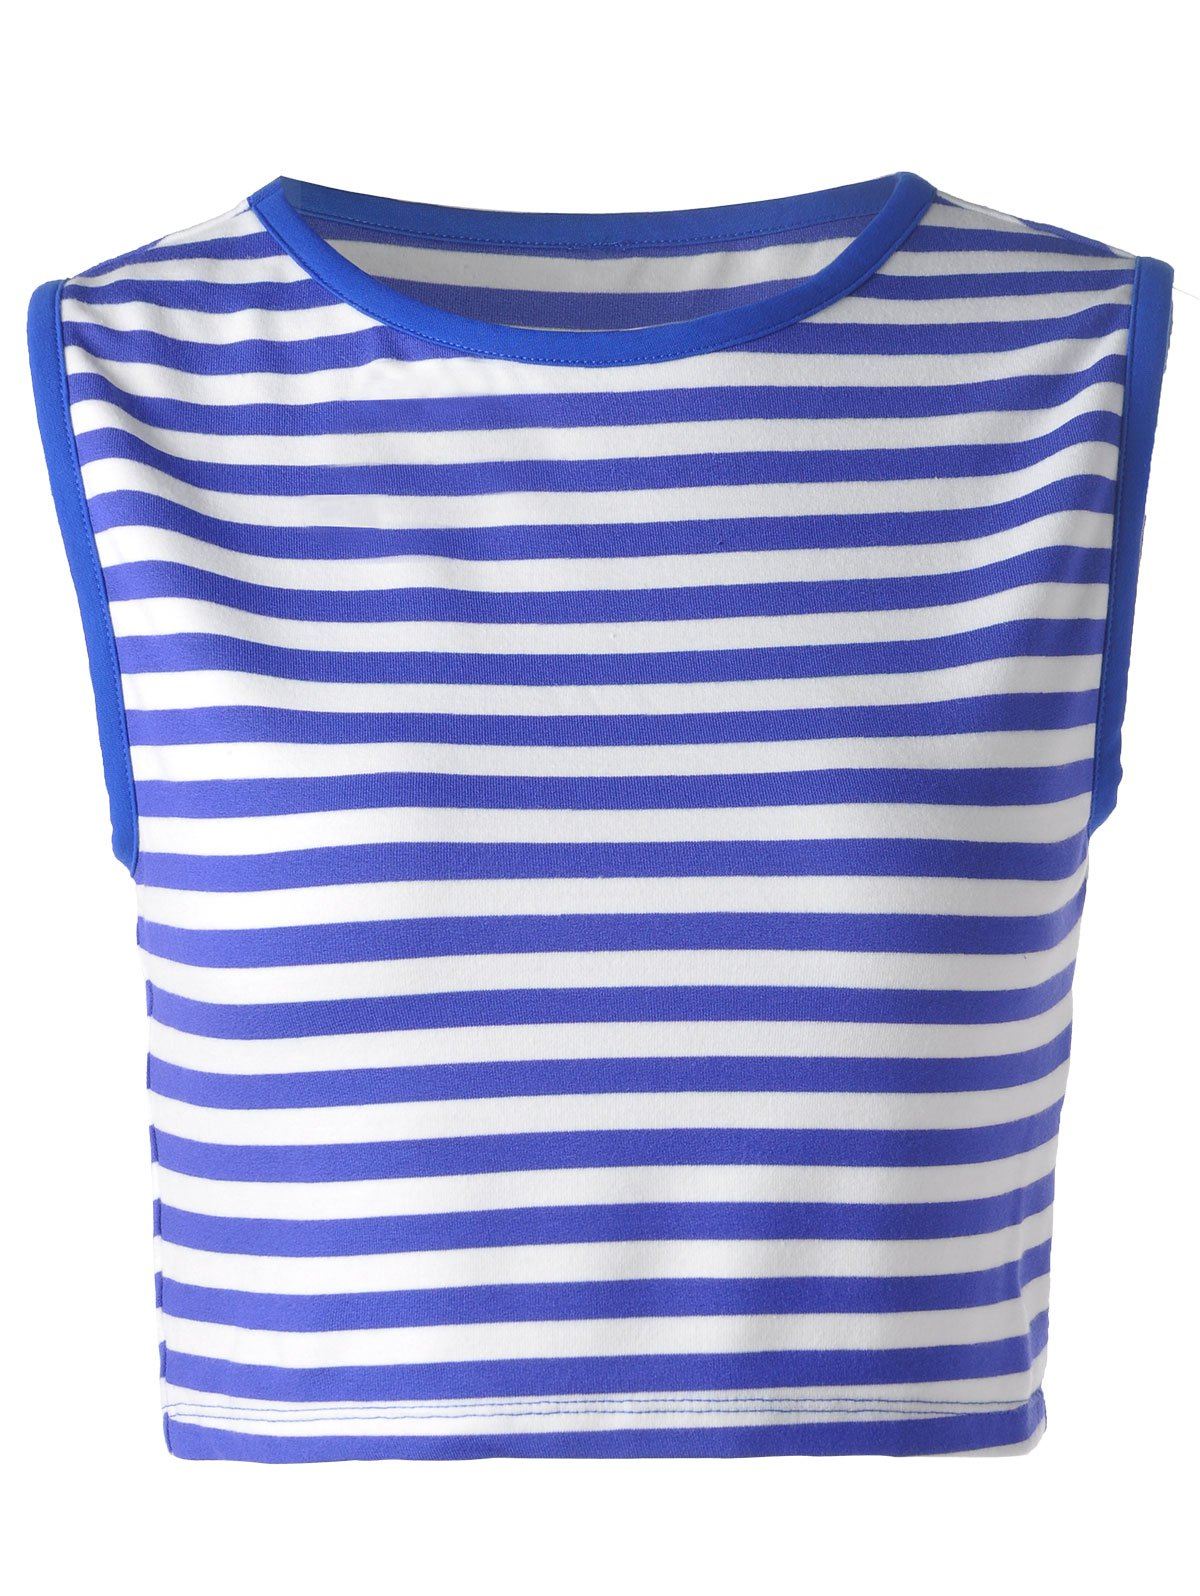 Trendy Blue and White Striped Tank Top For Women - BLUE/WHITE XL